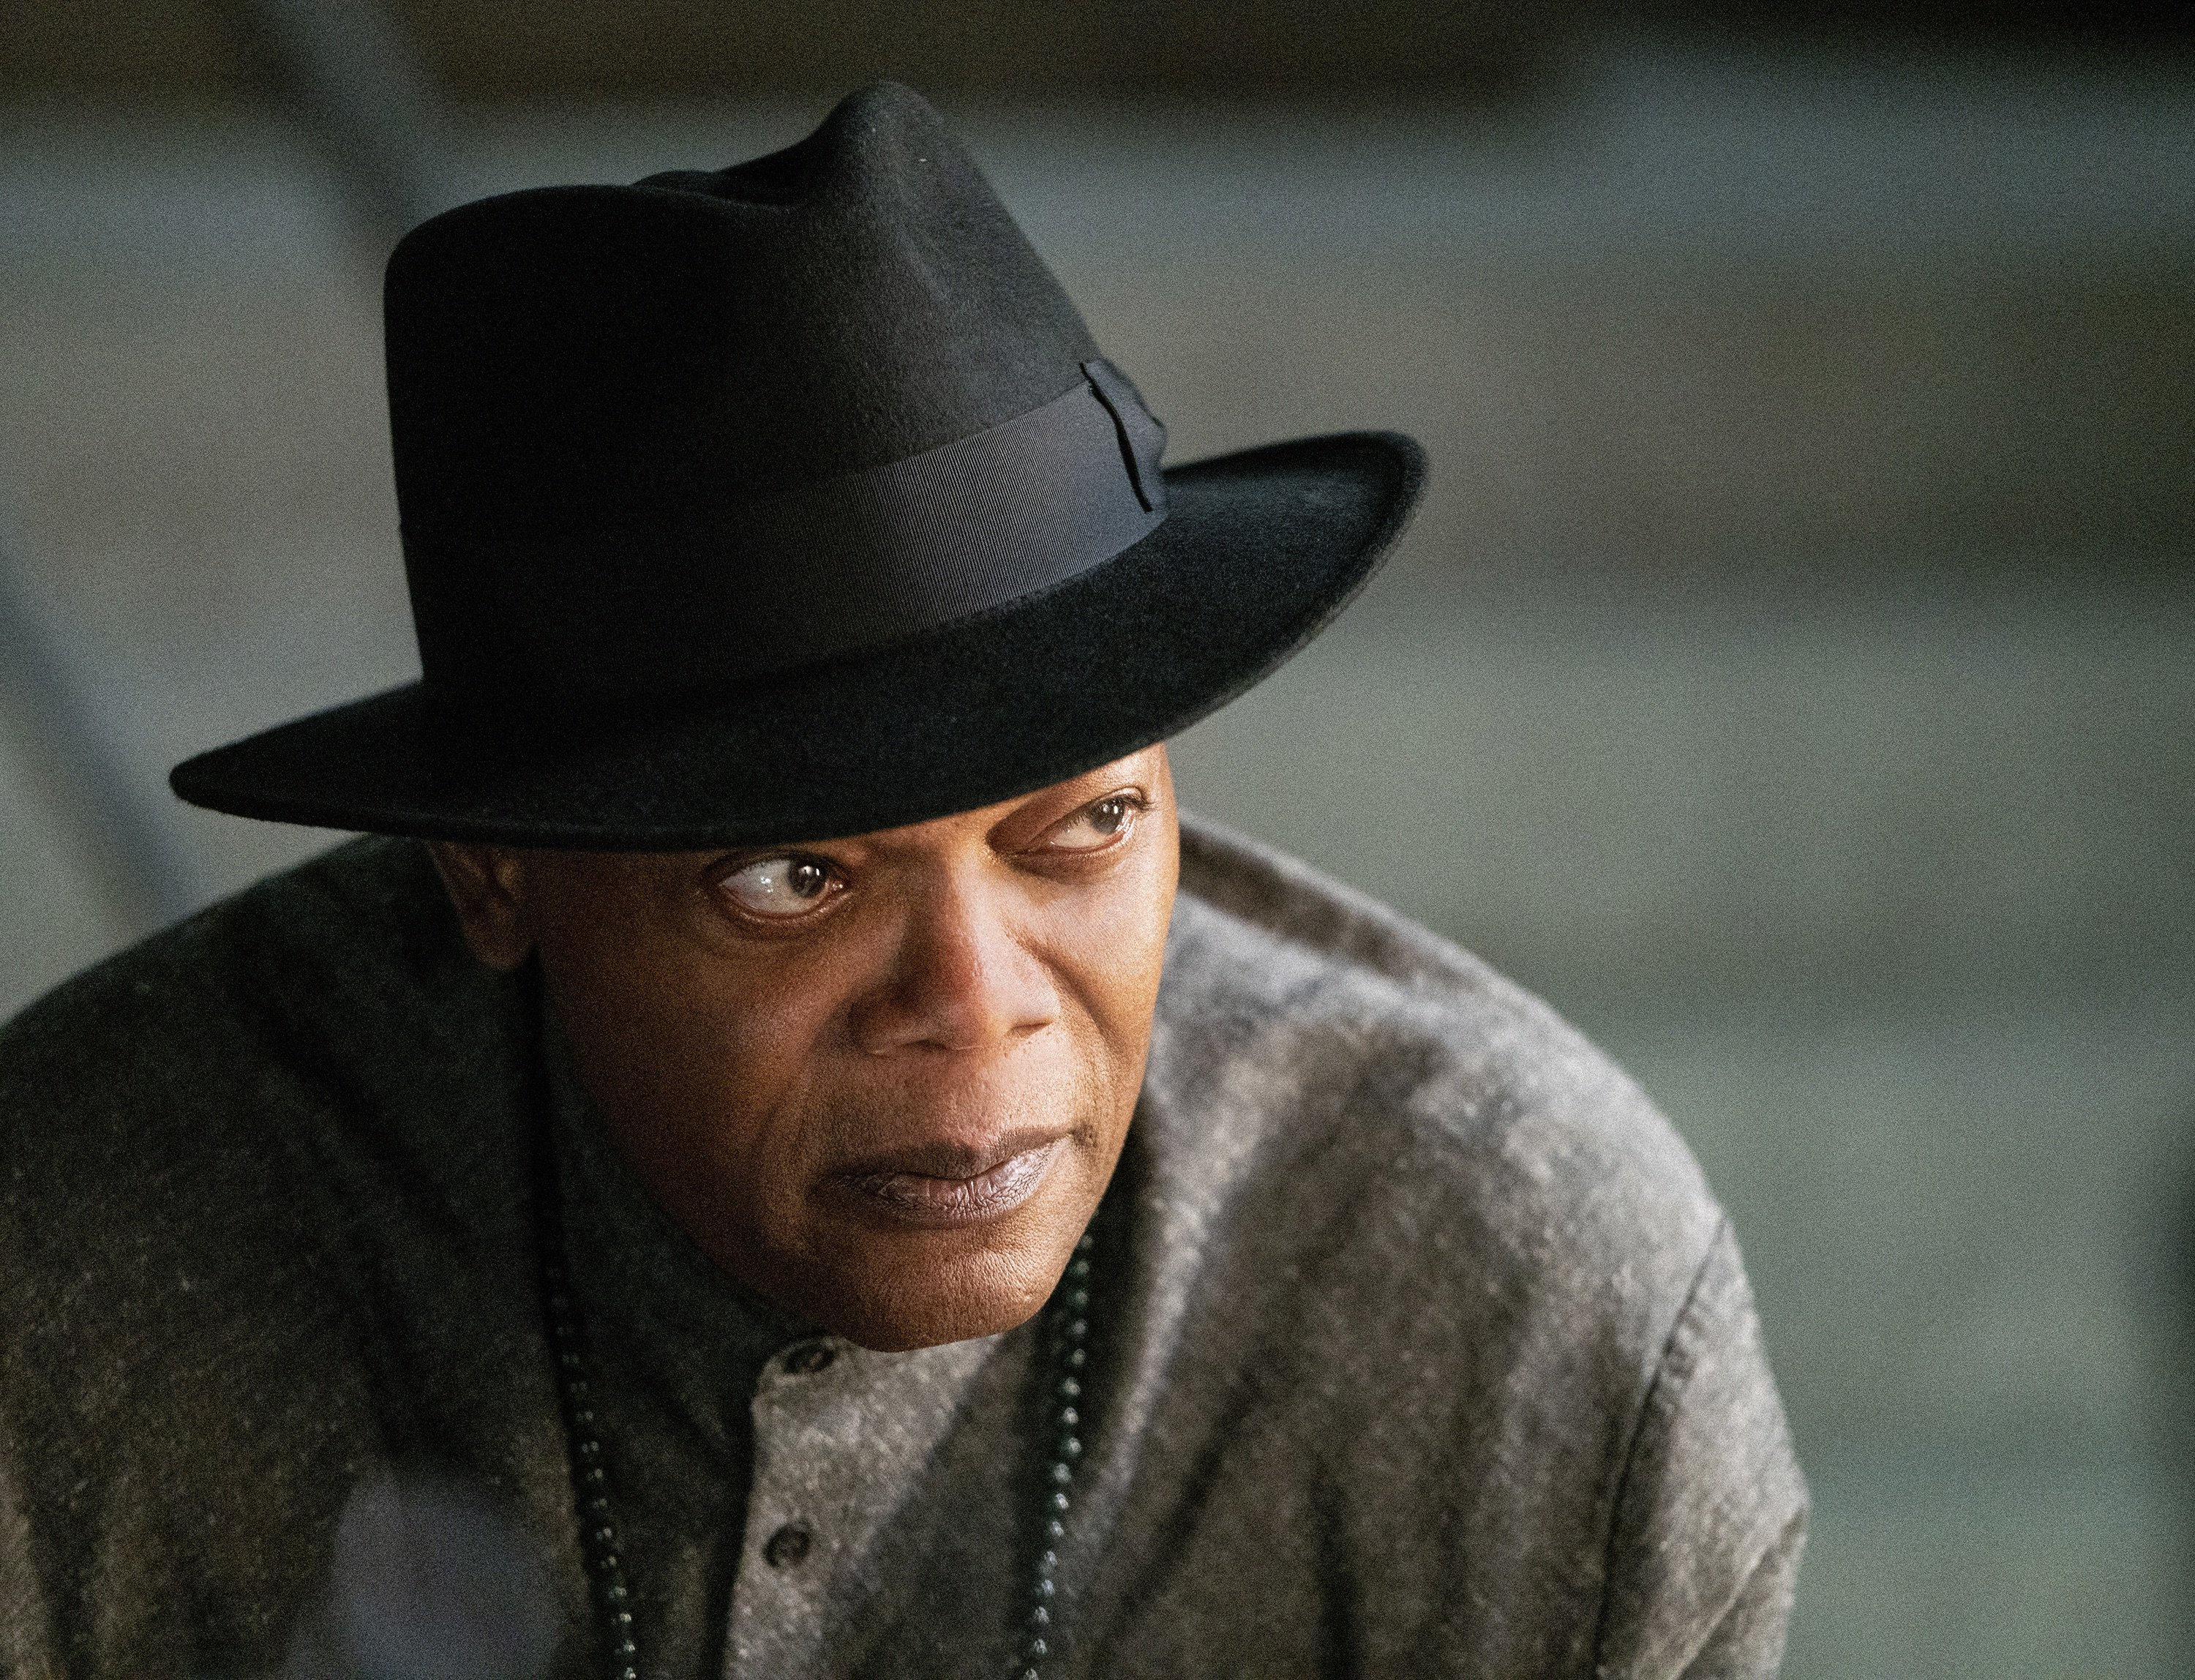 """Samuel L. Jackson,in a scene from the film """"The Protege."""" (Lionsgate via AP)"""